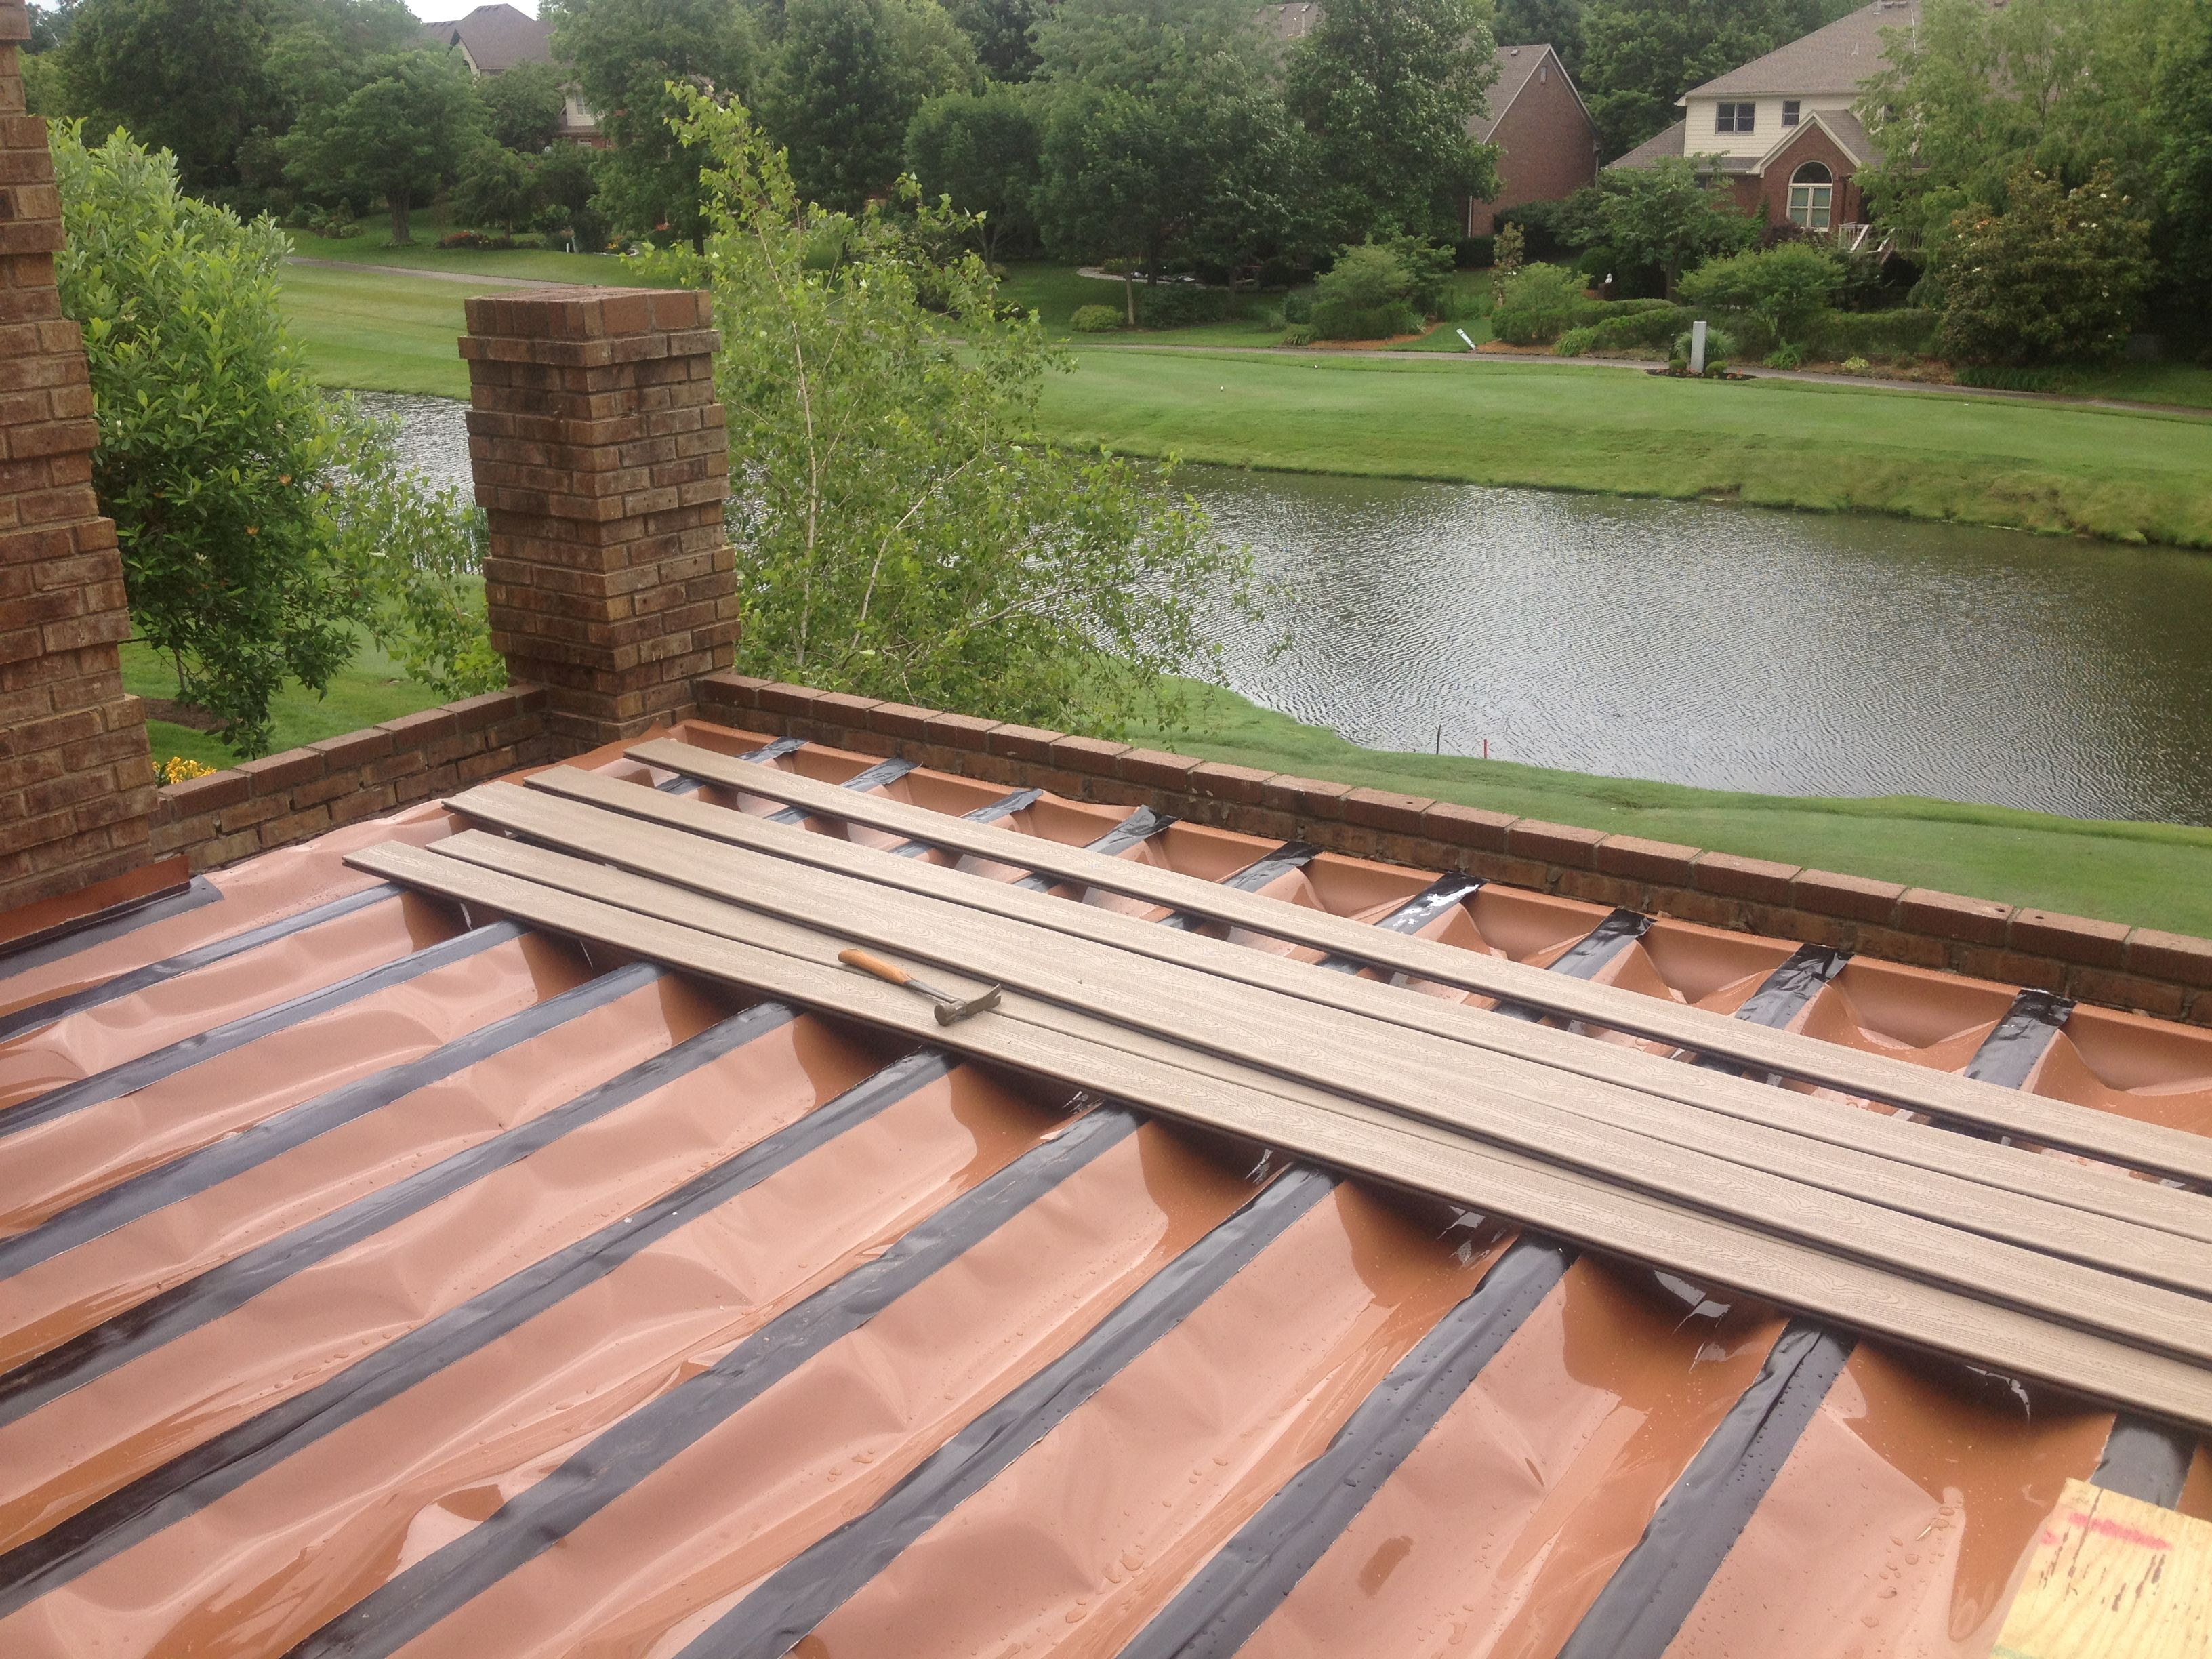 Here Is The Trex Rain Escapes System Installed Right Before The Decking.  This Deck Had